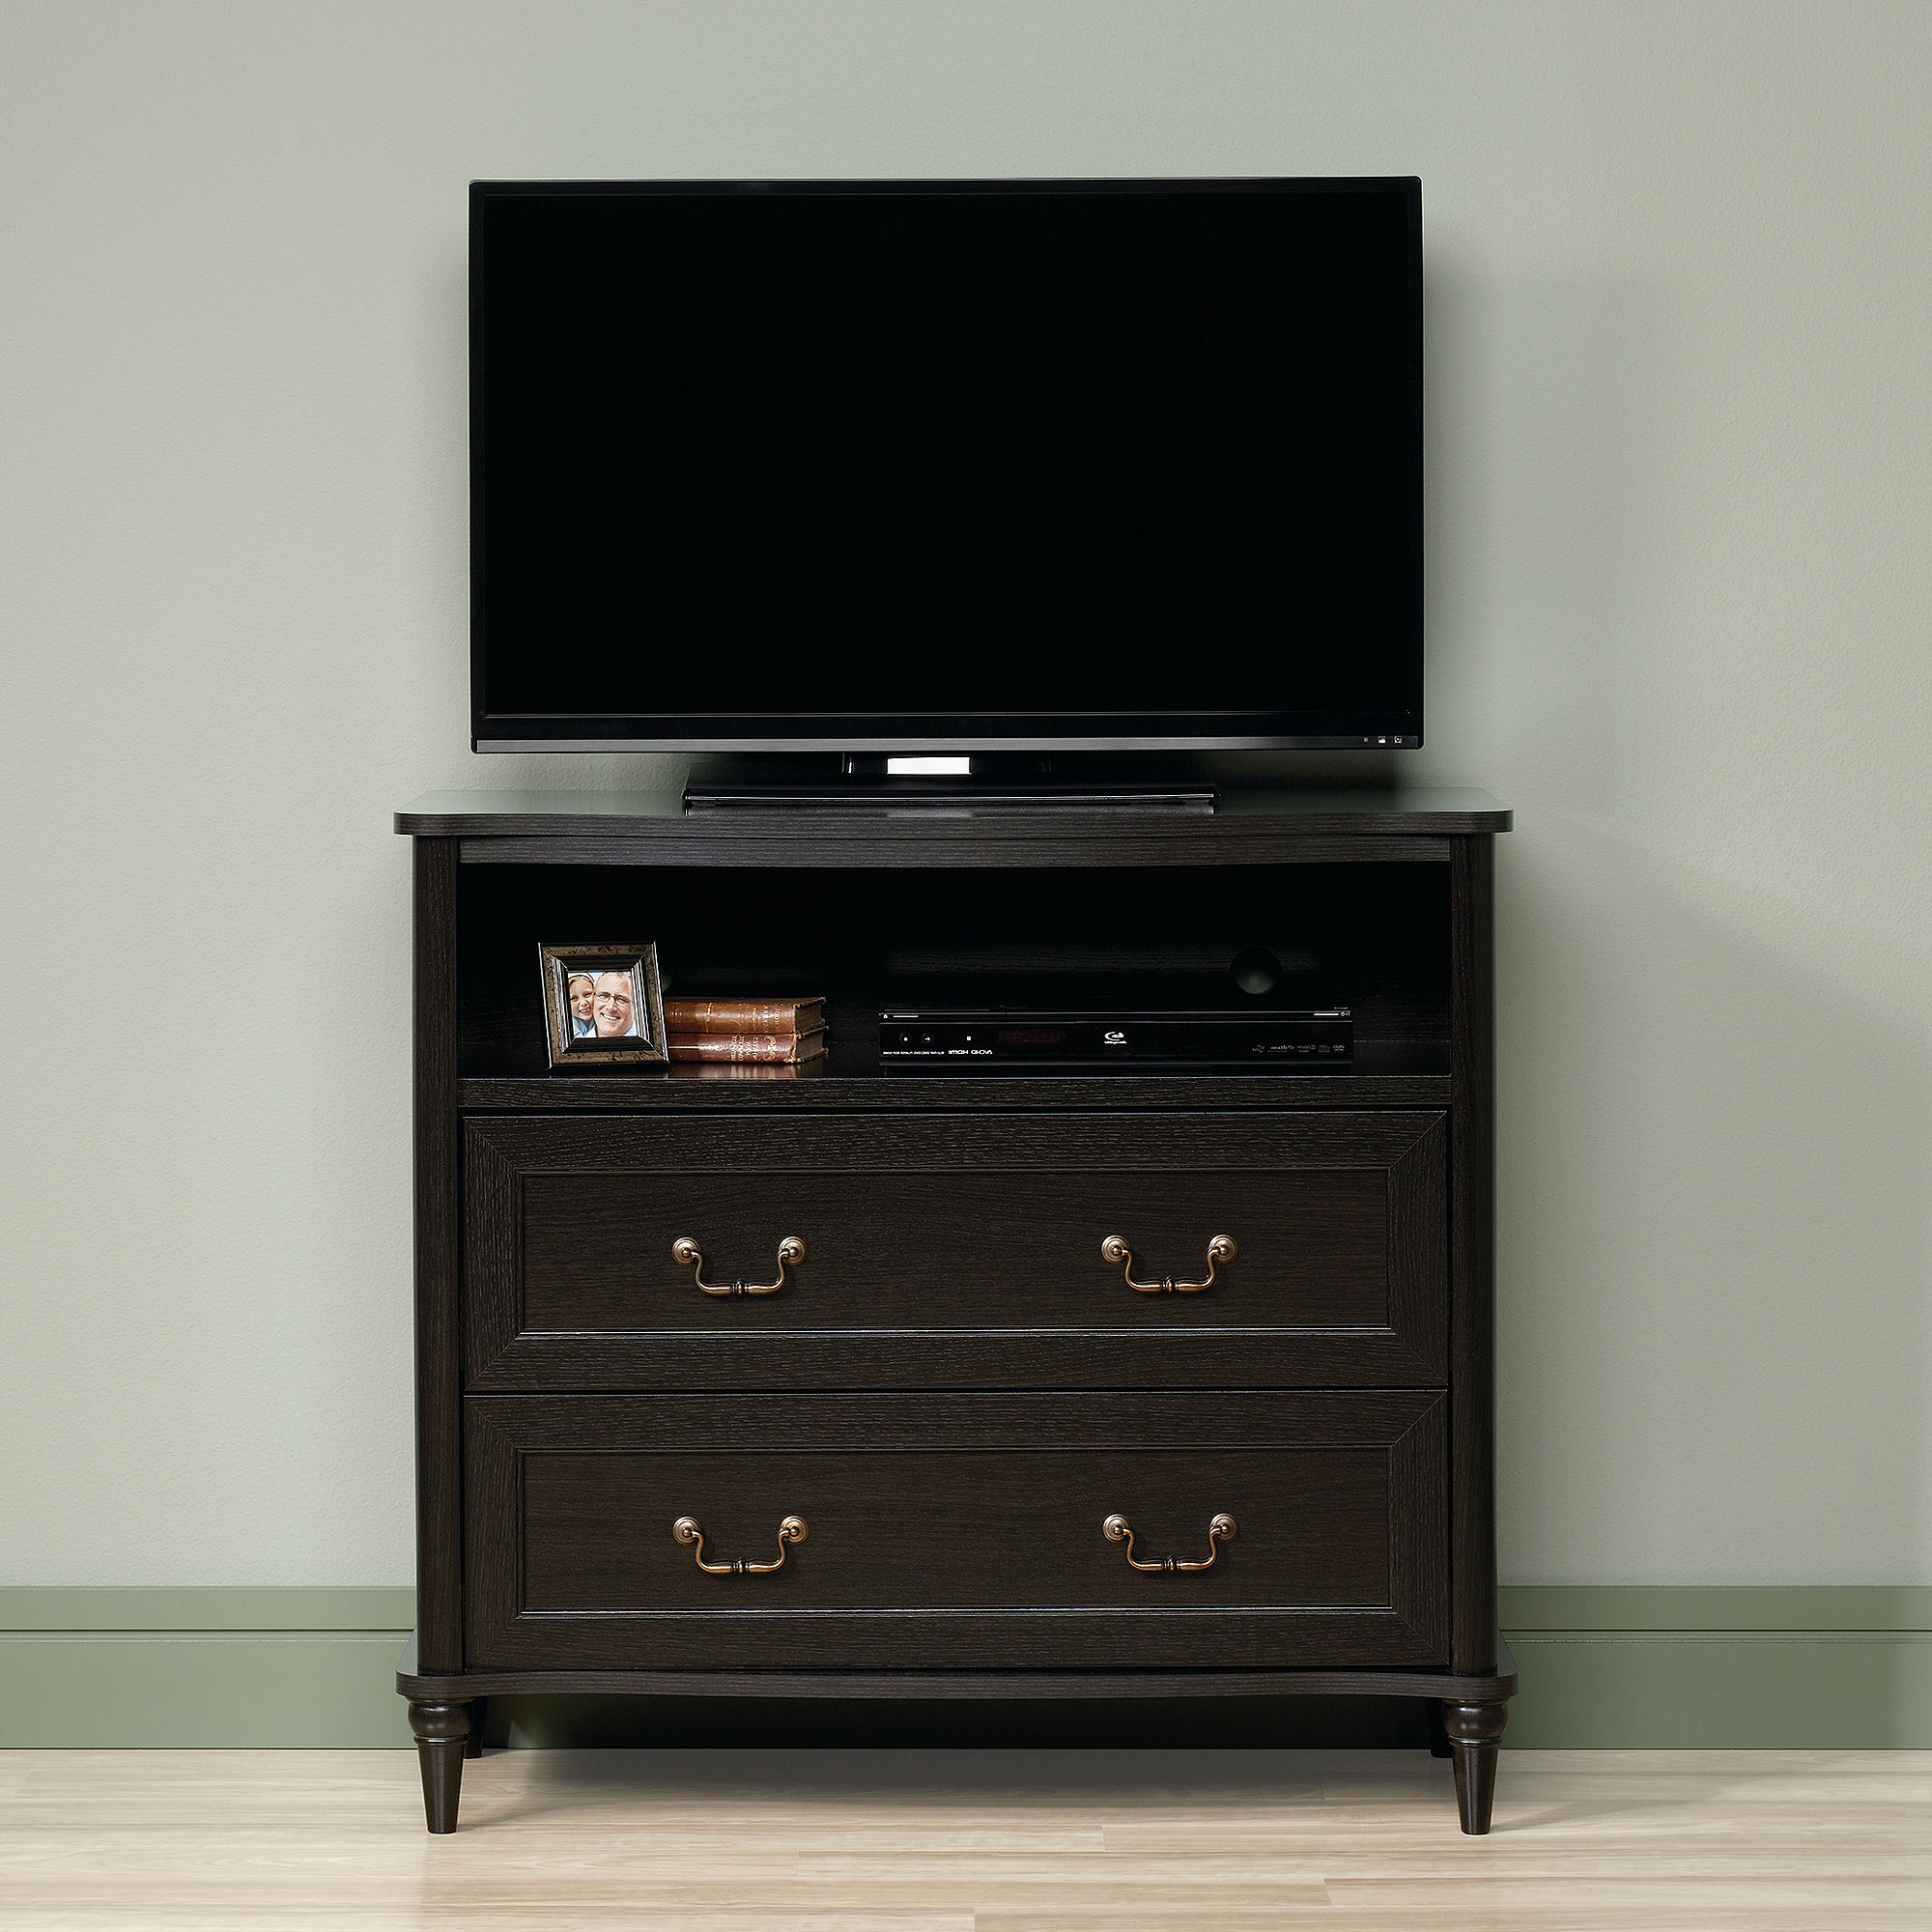 Newest Sauder Wakefield Furniture Collection – Walmart Regarding Wakefield 85 Inch Tv Stands (View 14 of 20)